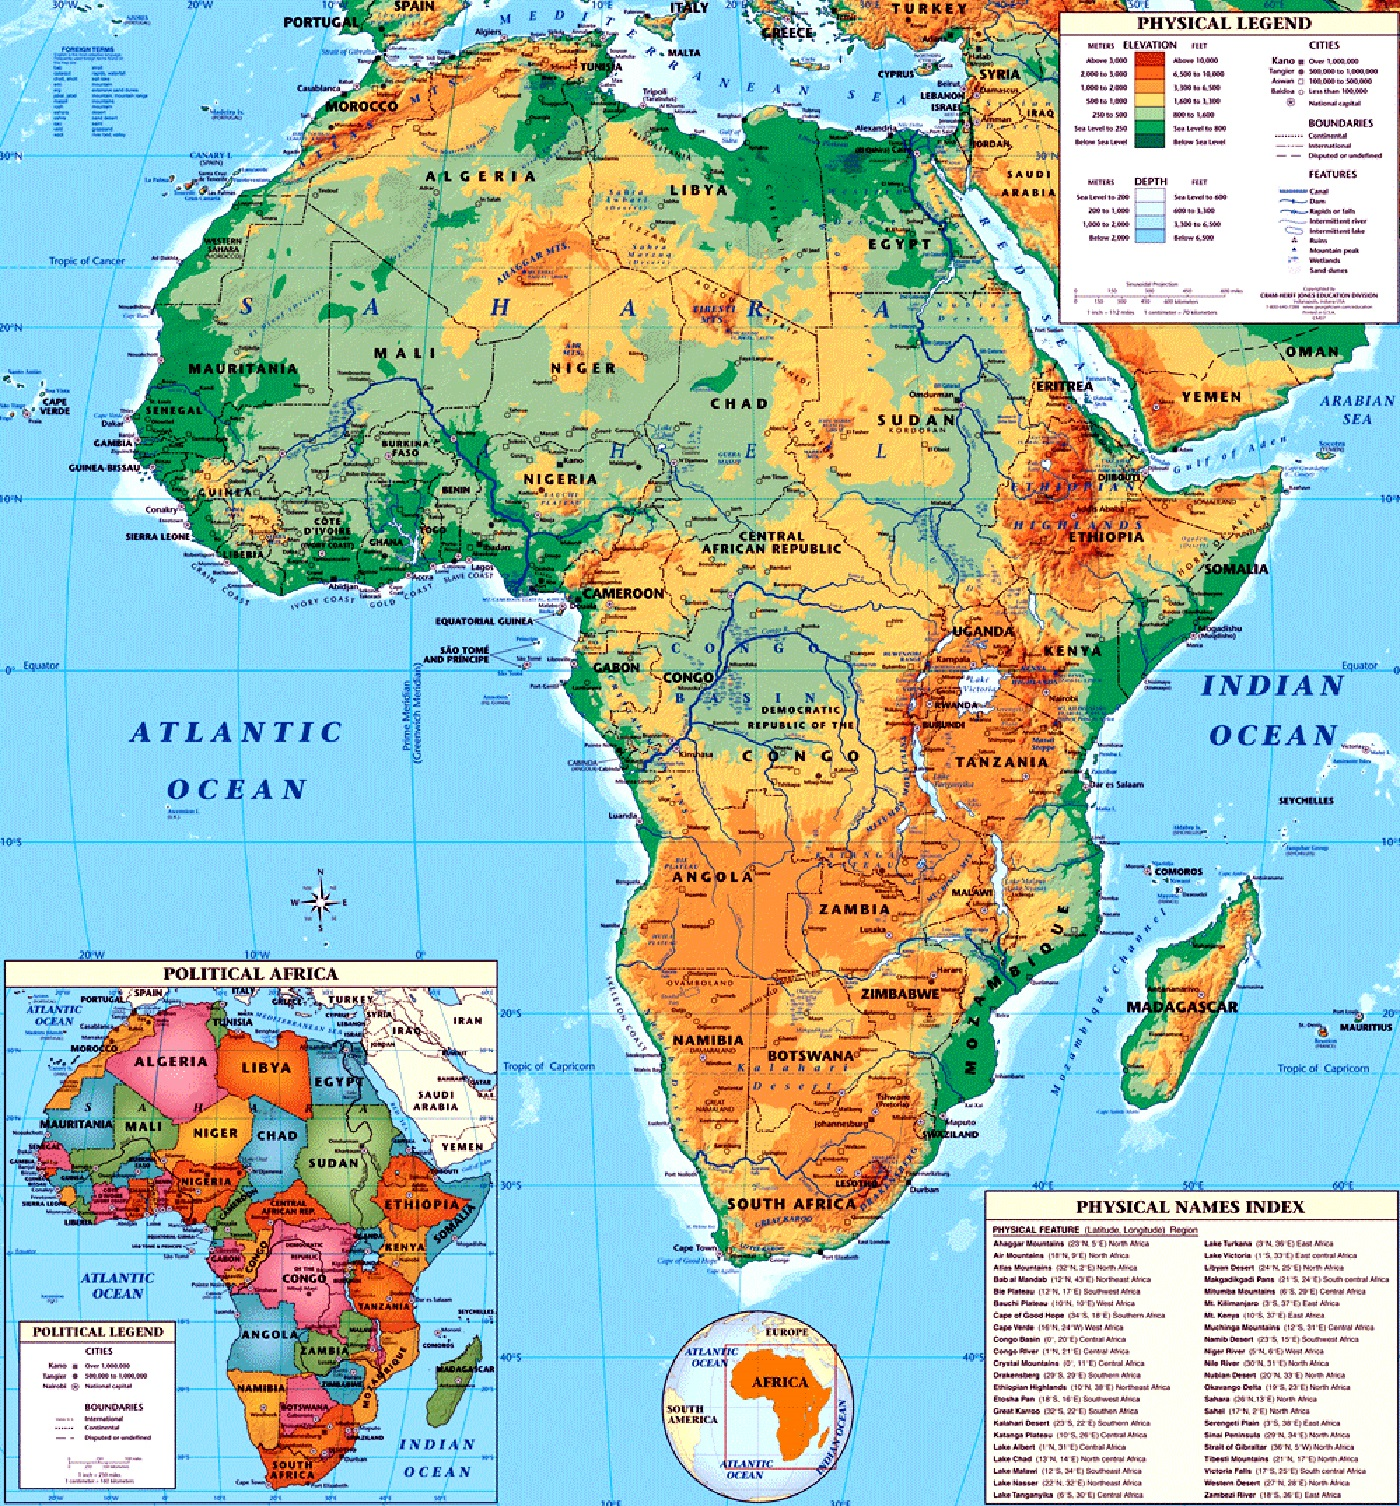 topographical map of california with Maps Of African Continent Countries Capitals And Flags on File Happy Isles Topo Map besides Quebec Relief Map 672 moreover Topographische Karte likewise 40110a1 additionally Stock Photo California 3d Relief Map Cut Out With Urban Areas And Interstate Highways 30728190.